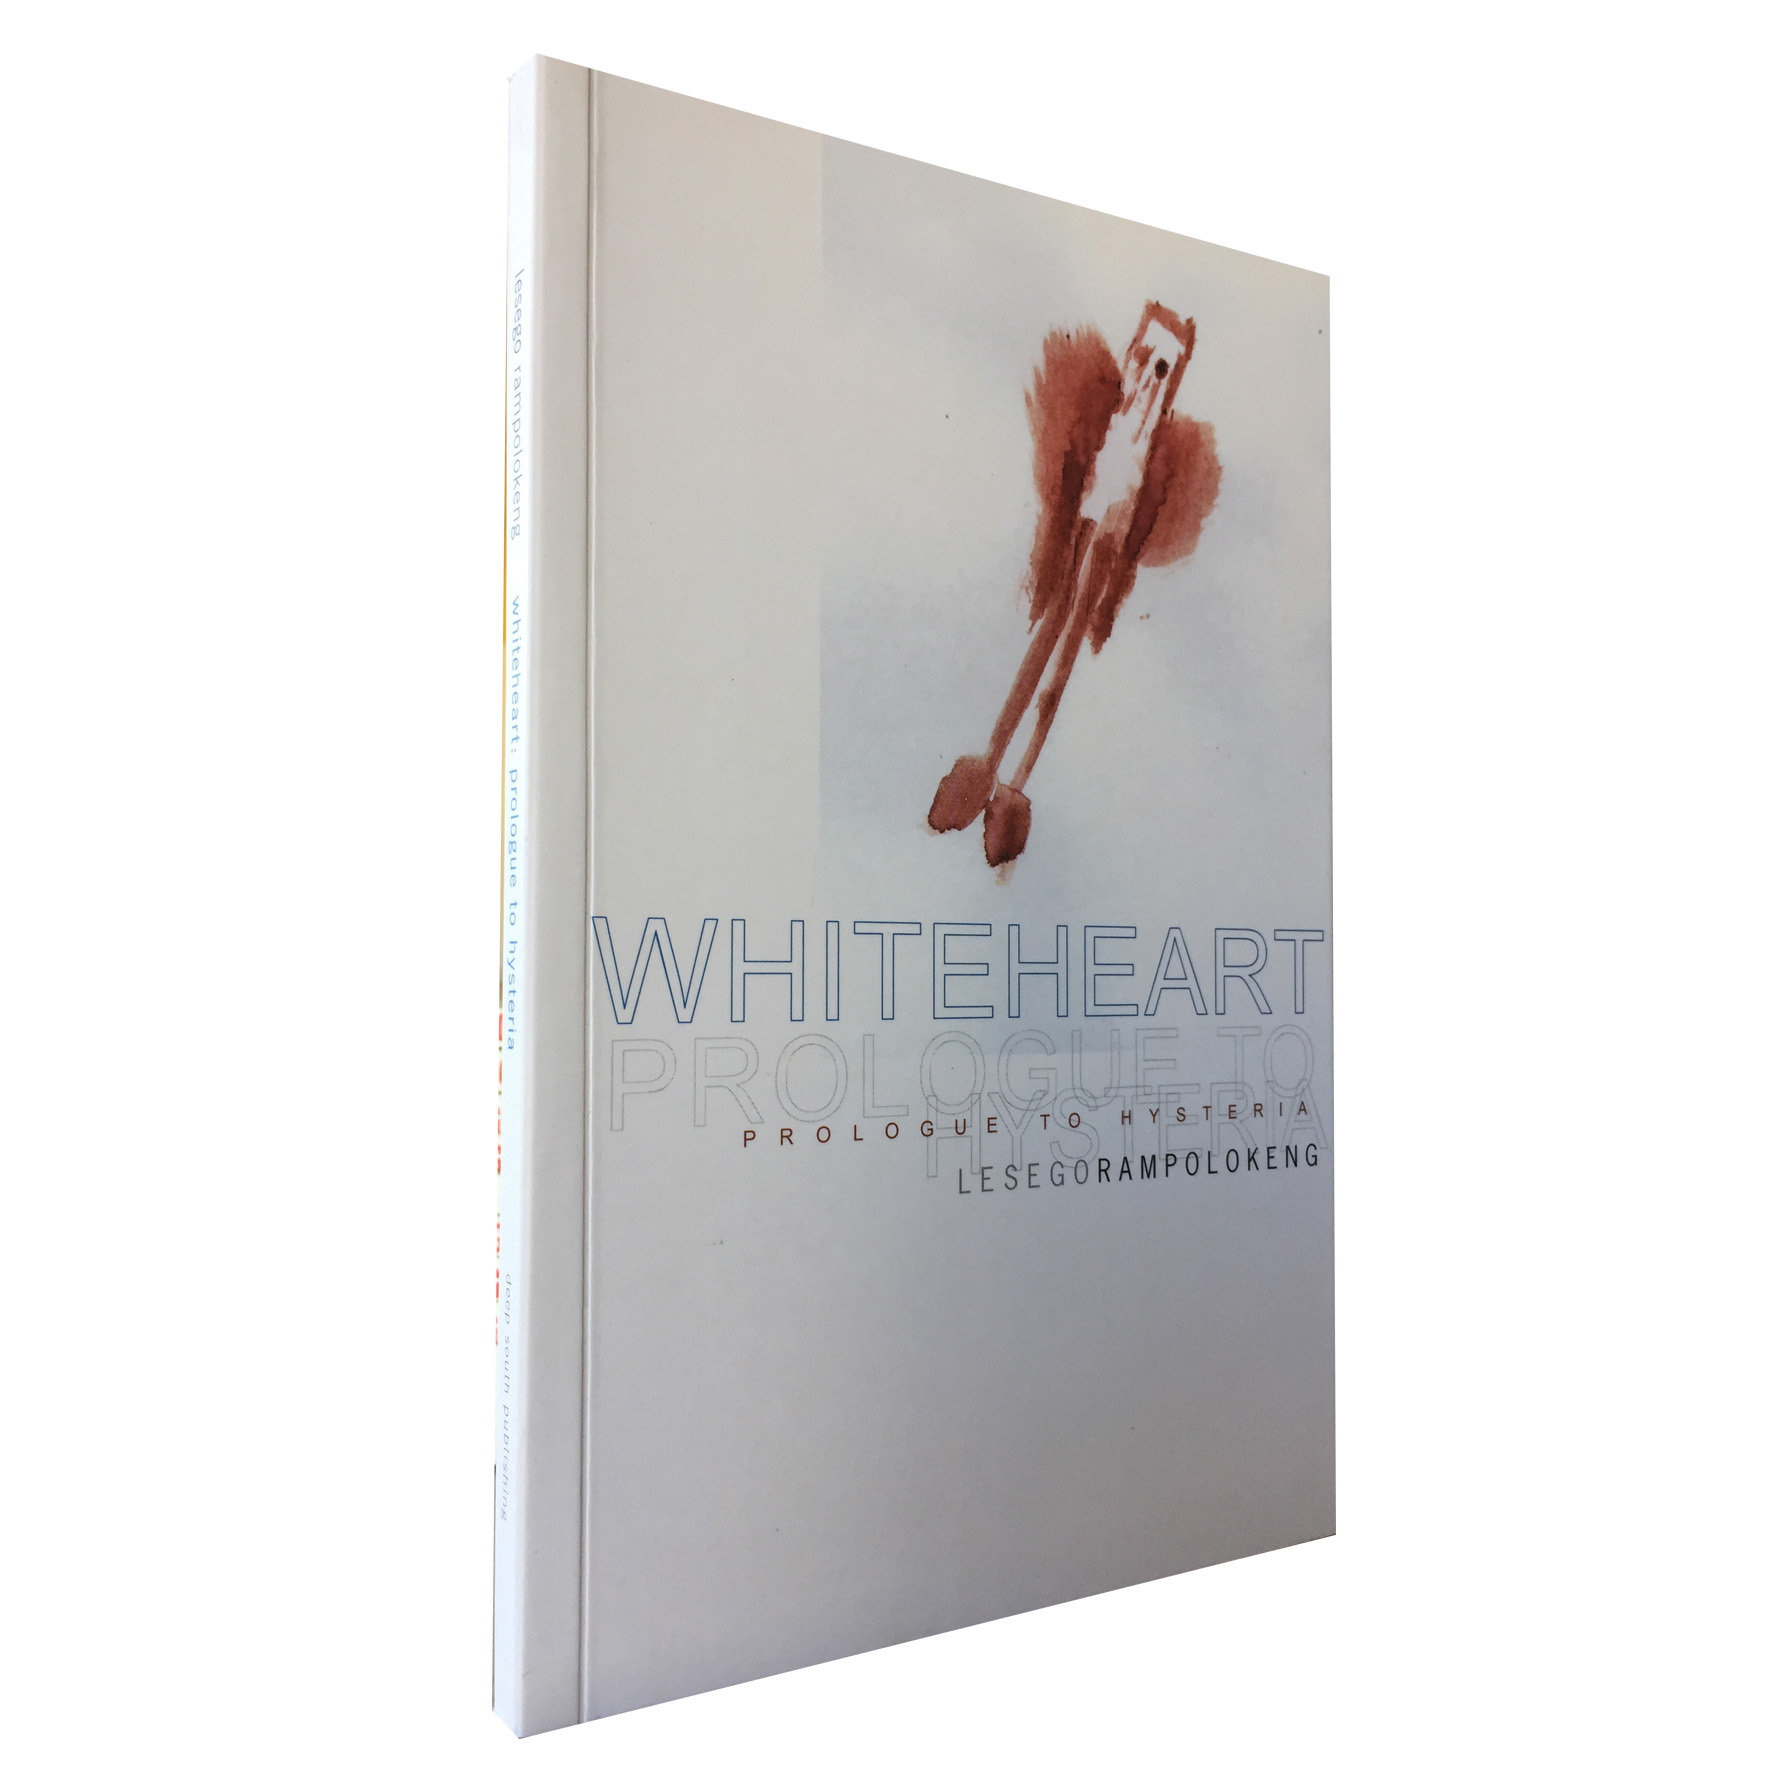 Whiteheart: Prologue to Hysteria by Lesego Rampolokeng (Deep South) DS17